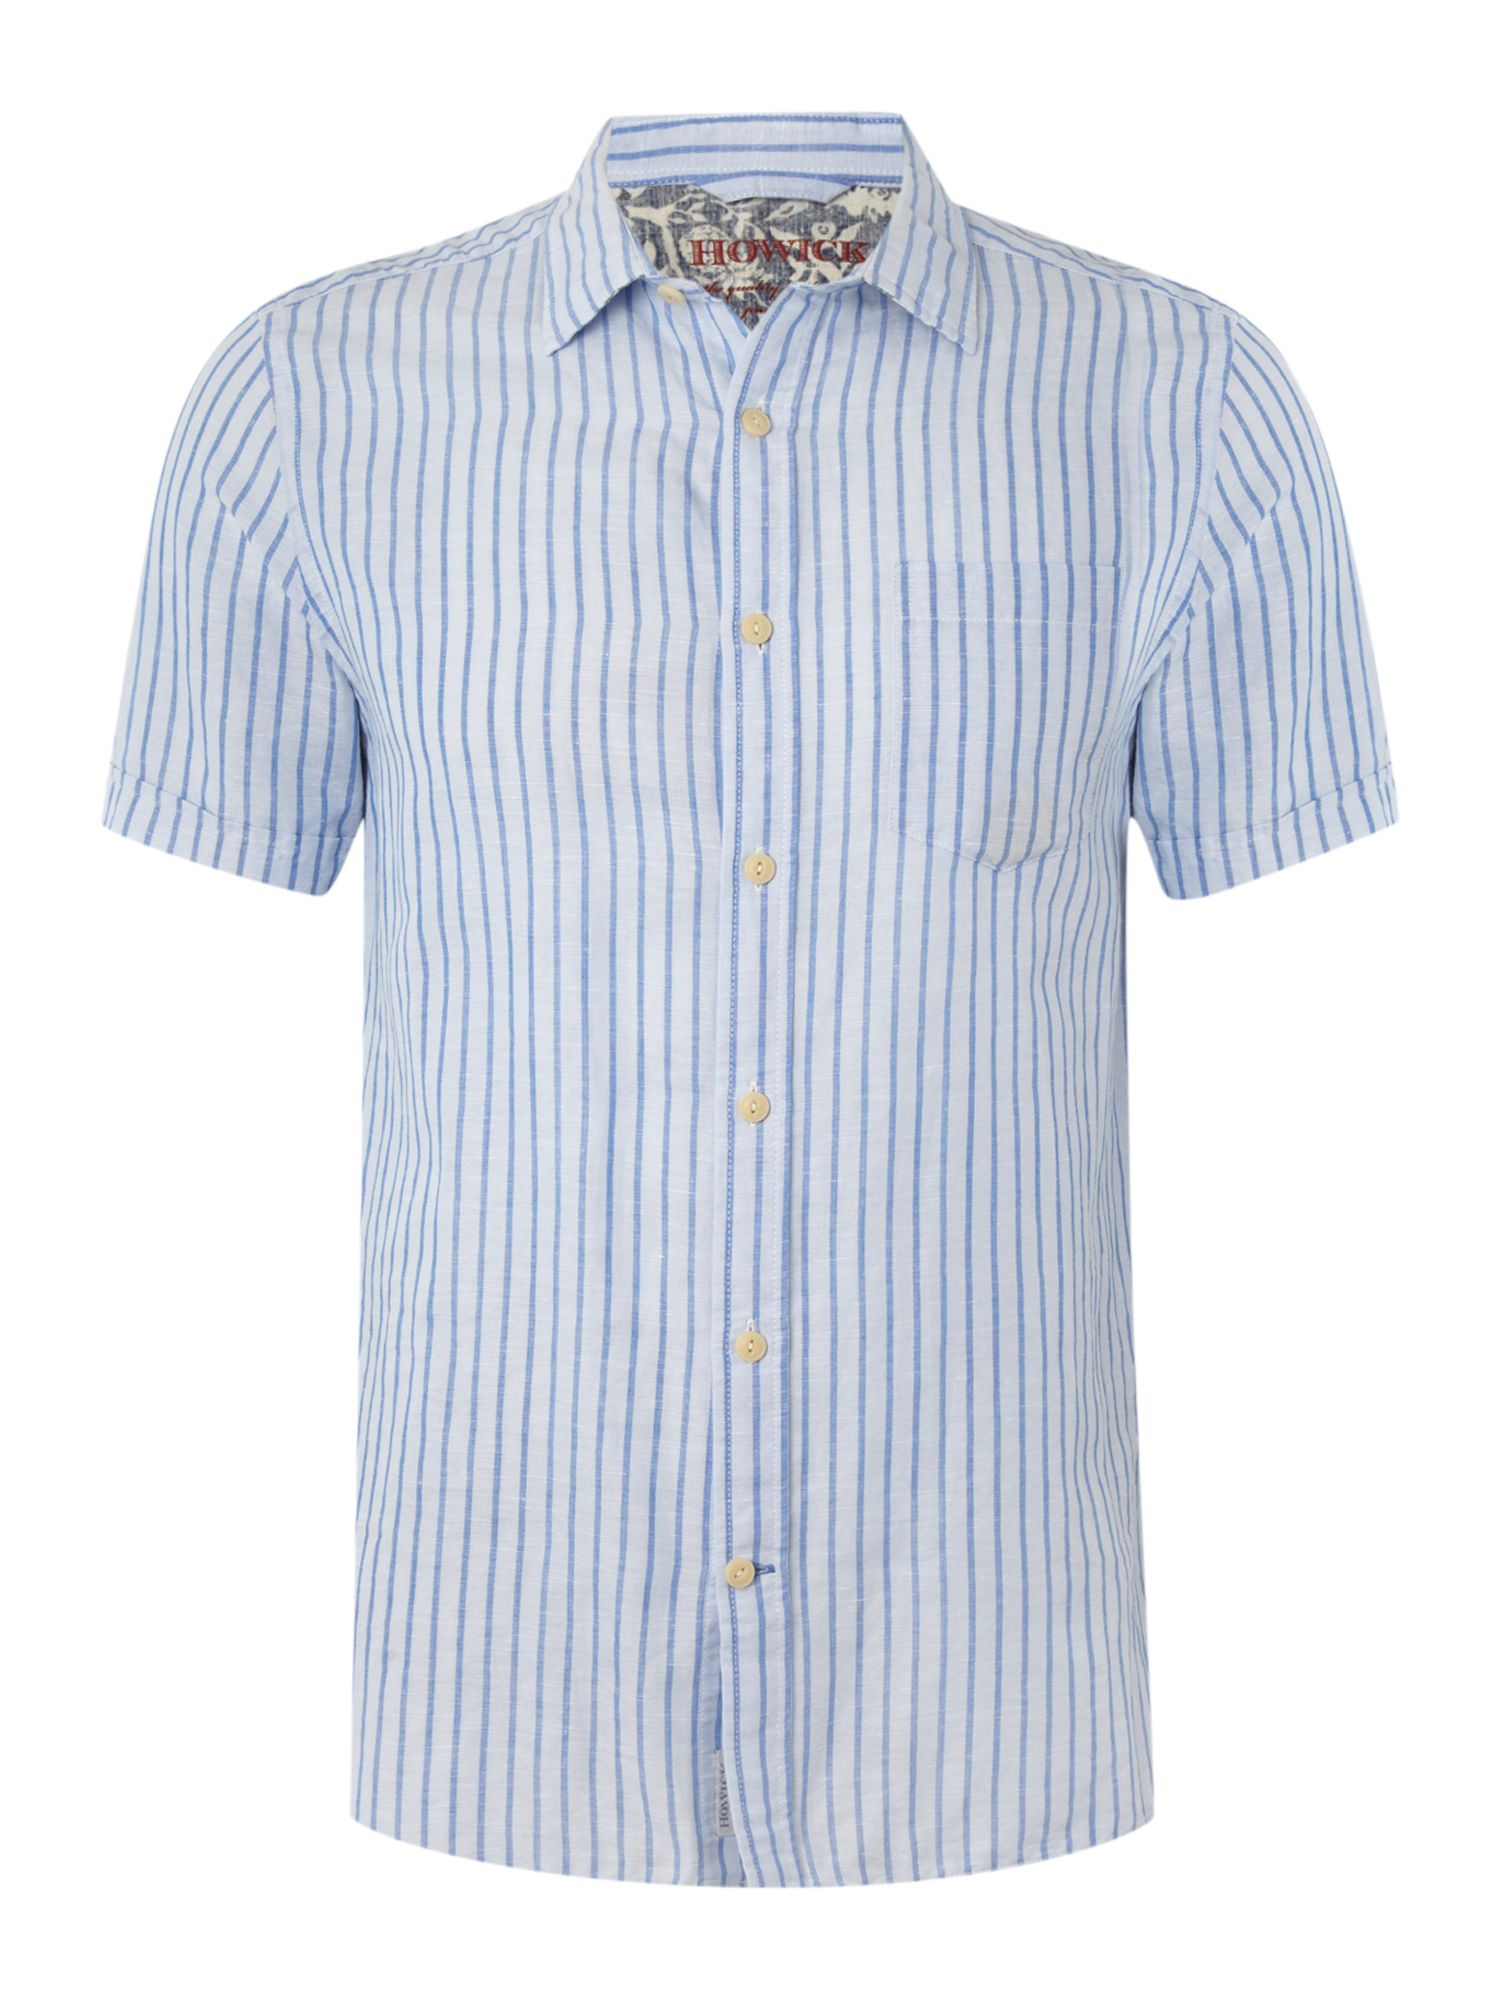 Short sleeved one pocket striped shirt